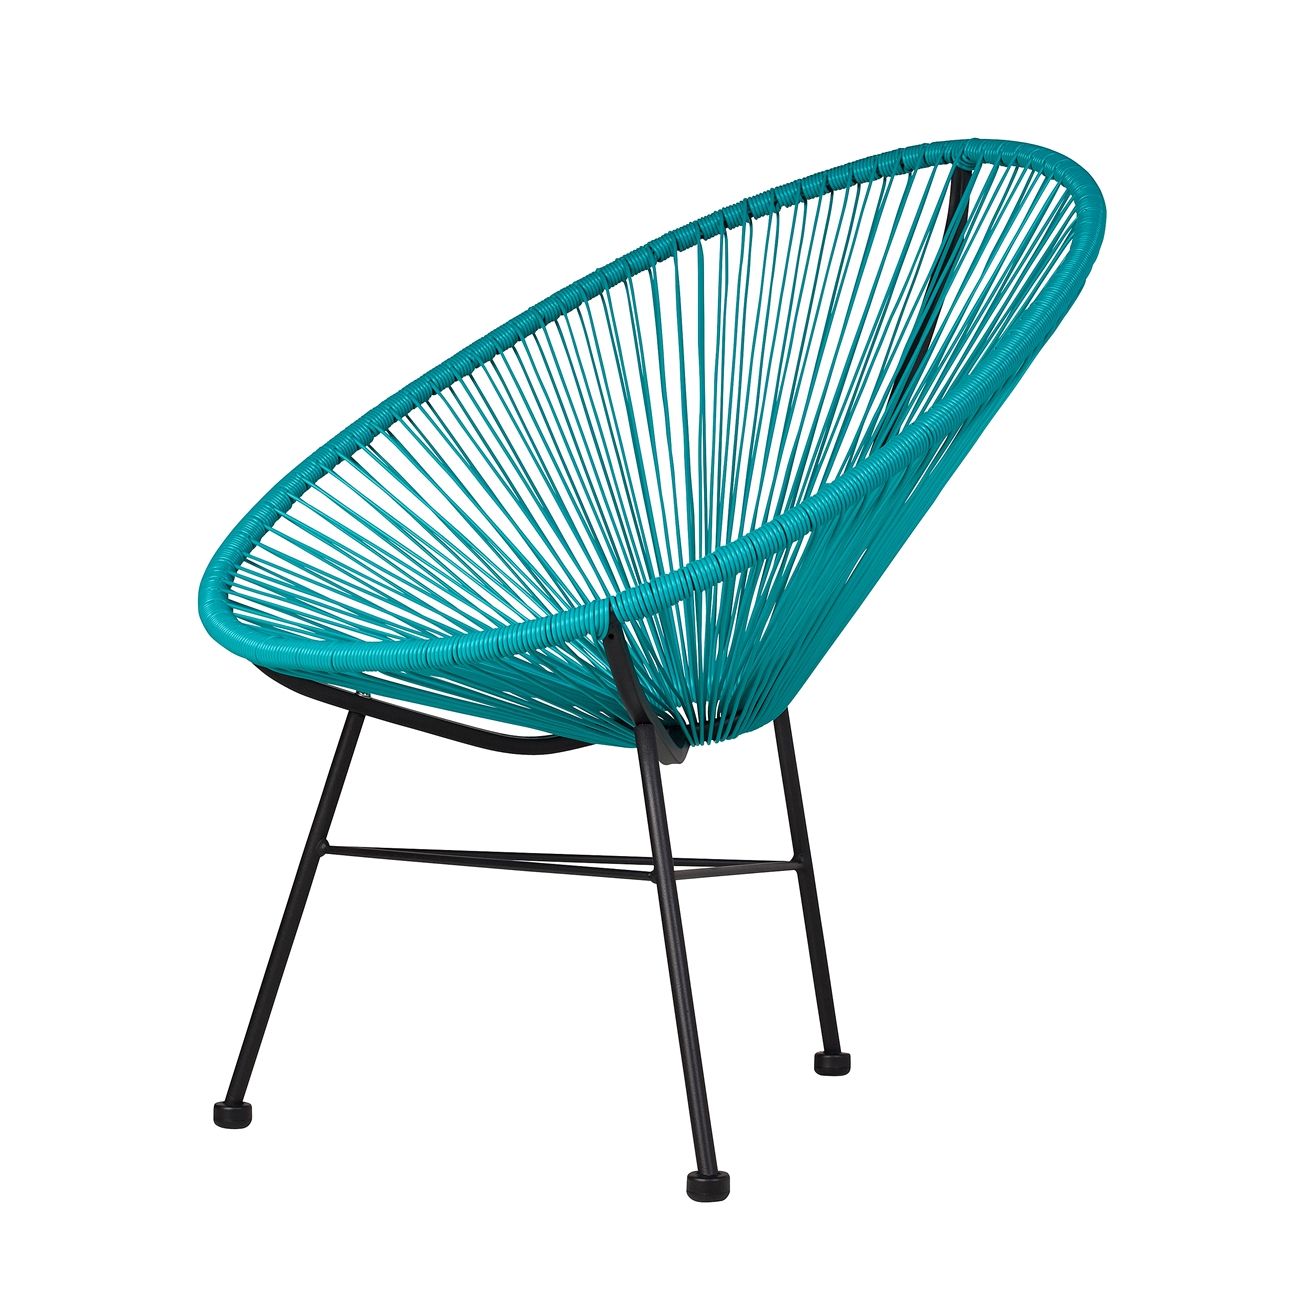 Acapulco Outdoor Lounge Chair Blue, The Khazana Home Austin Furniture Store